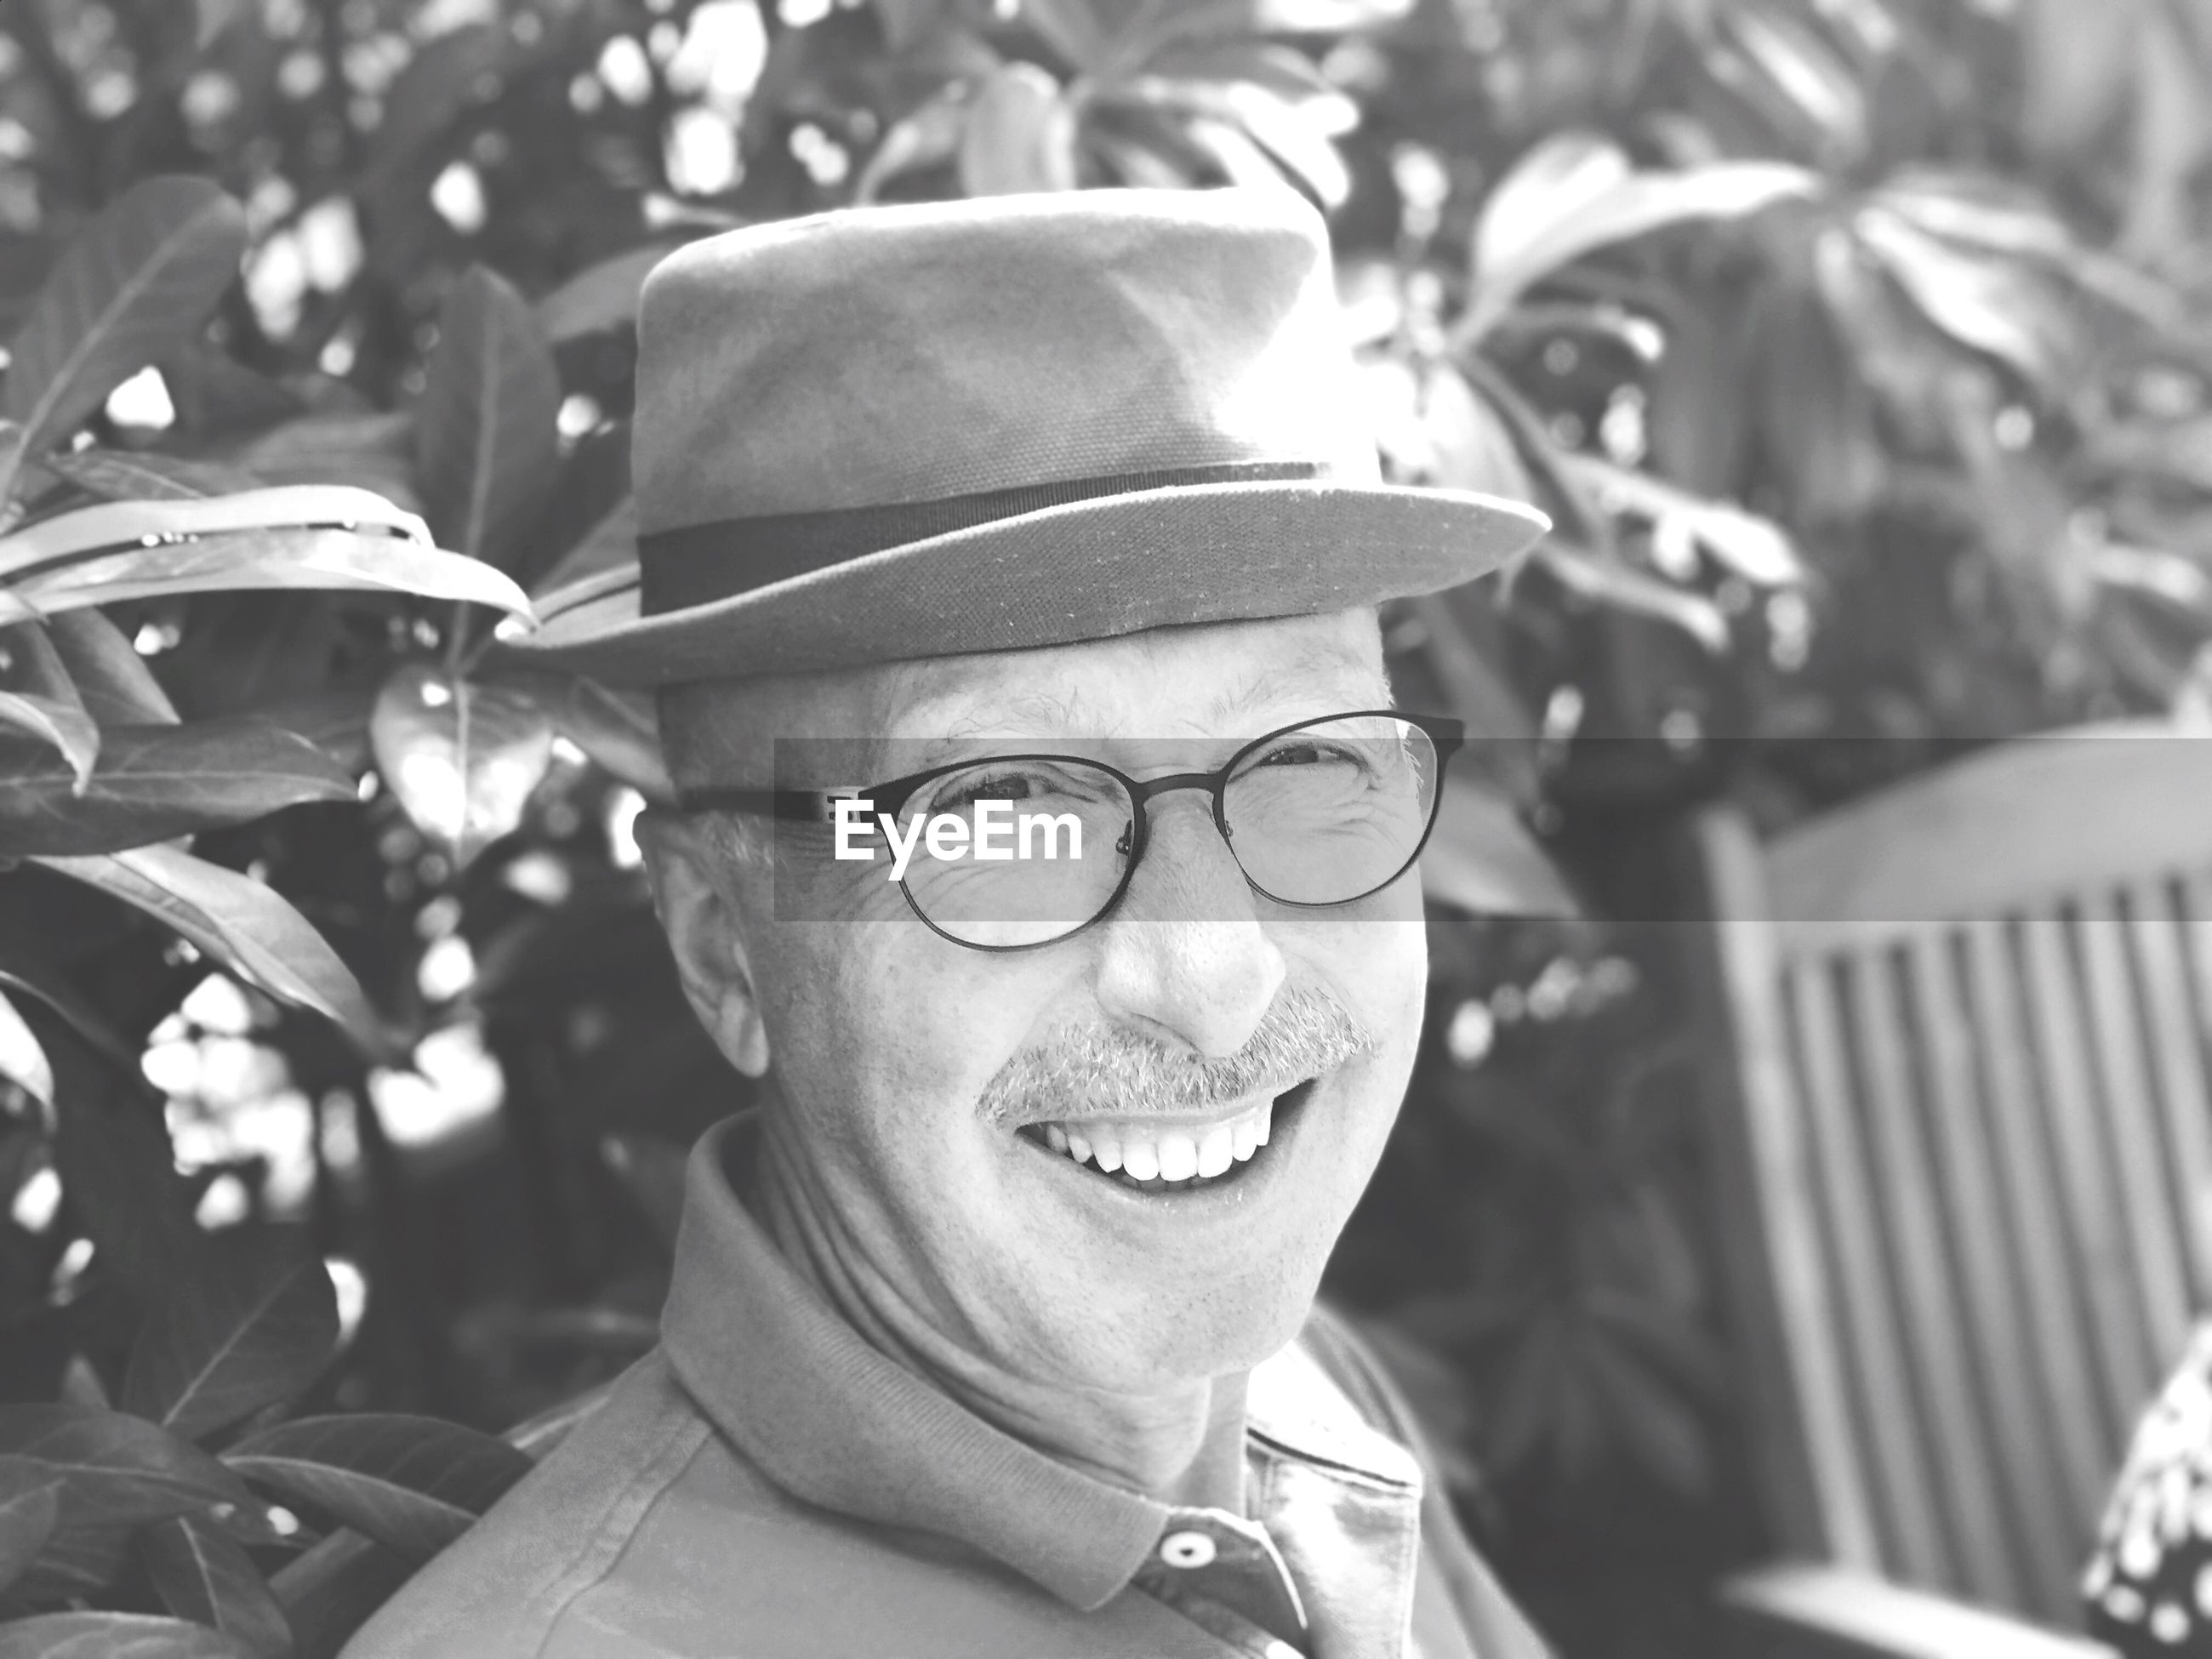 portrait, glasses, headshot, eyeglasses, real people, smiling, one person, men, hat, lifestyles, happiness, leisure activity, emotion, males, adult, focus on foreground, looking at camera, clothing, mature men, outdoors, human face